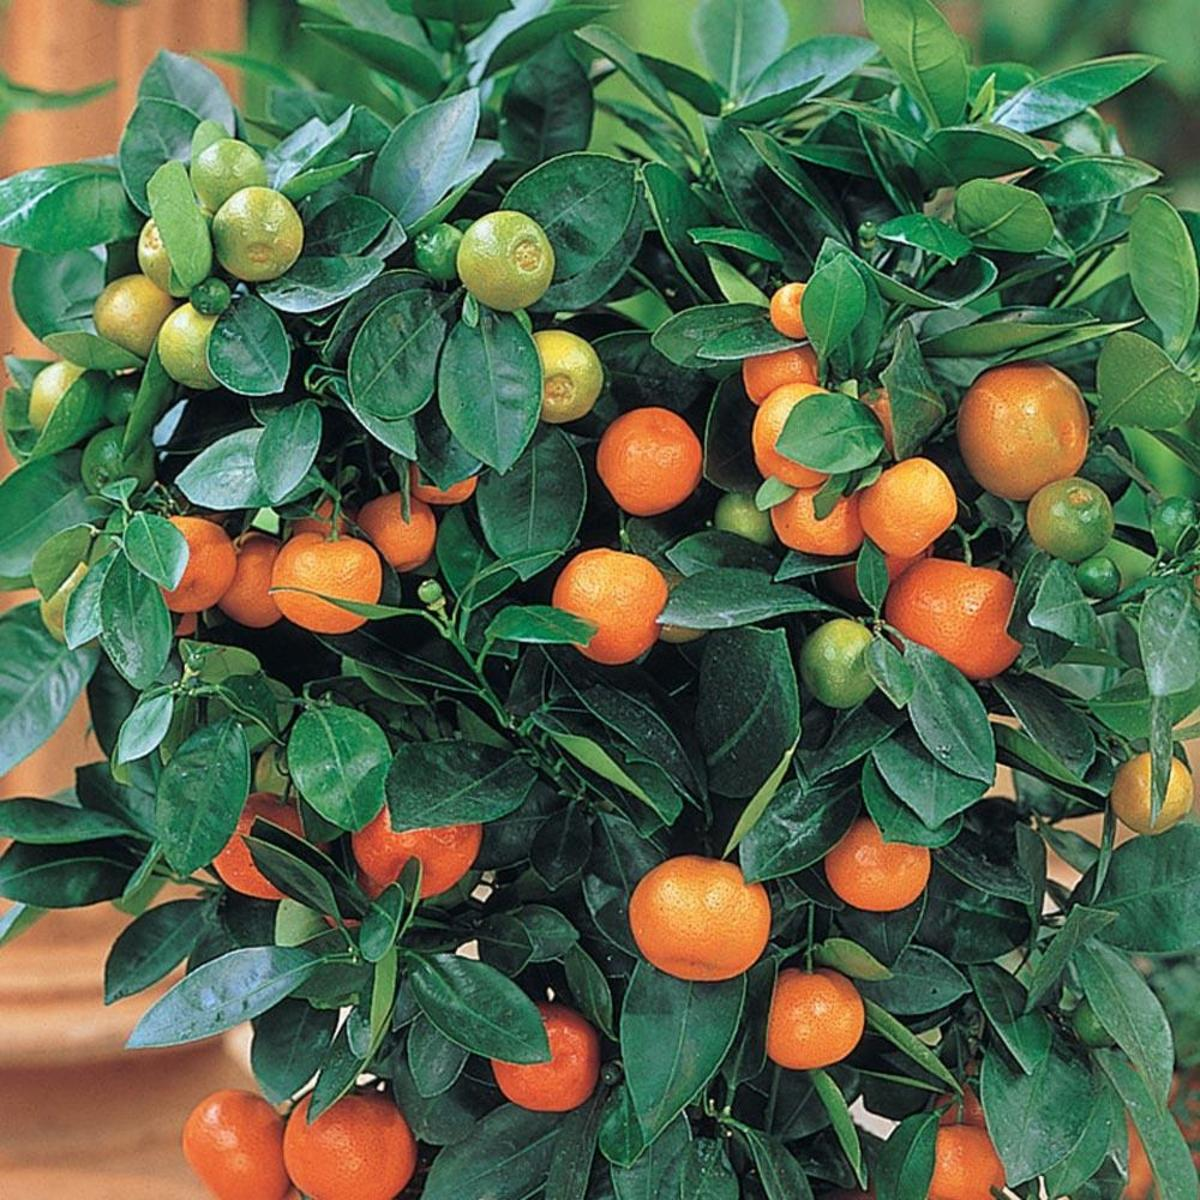 Fragrant, delicious, low-maintenance. What more could you want in a houseplant?